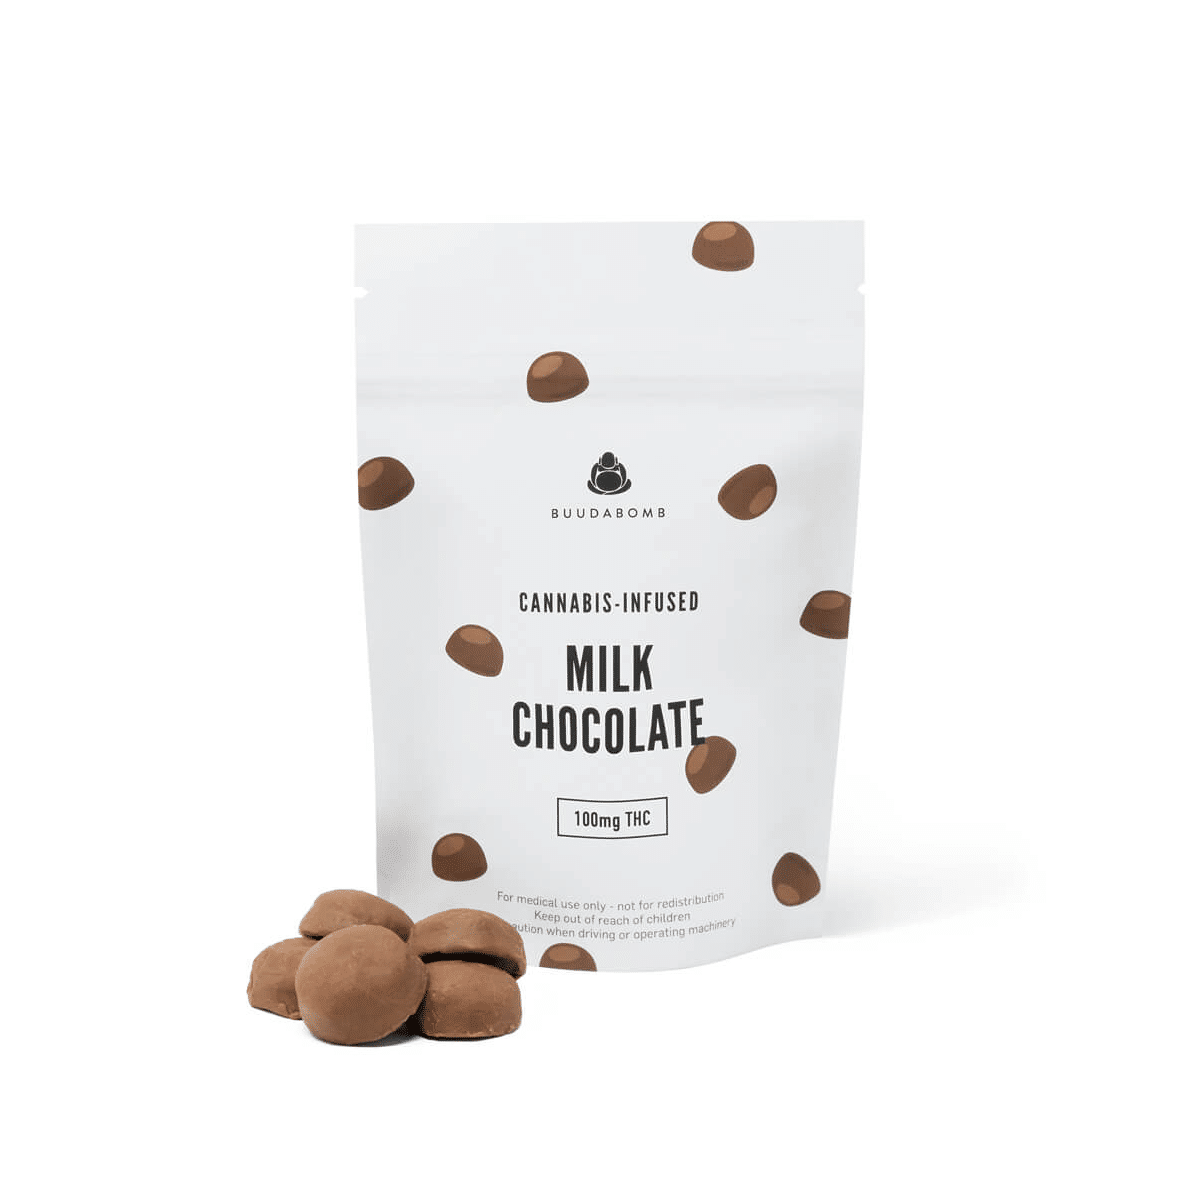 Buuda Bomb Milk Chocolates by Green Society - Image © 2018 Green Society. All Rights Reserved.